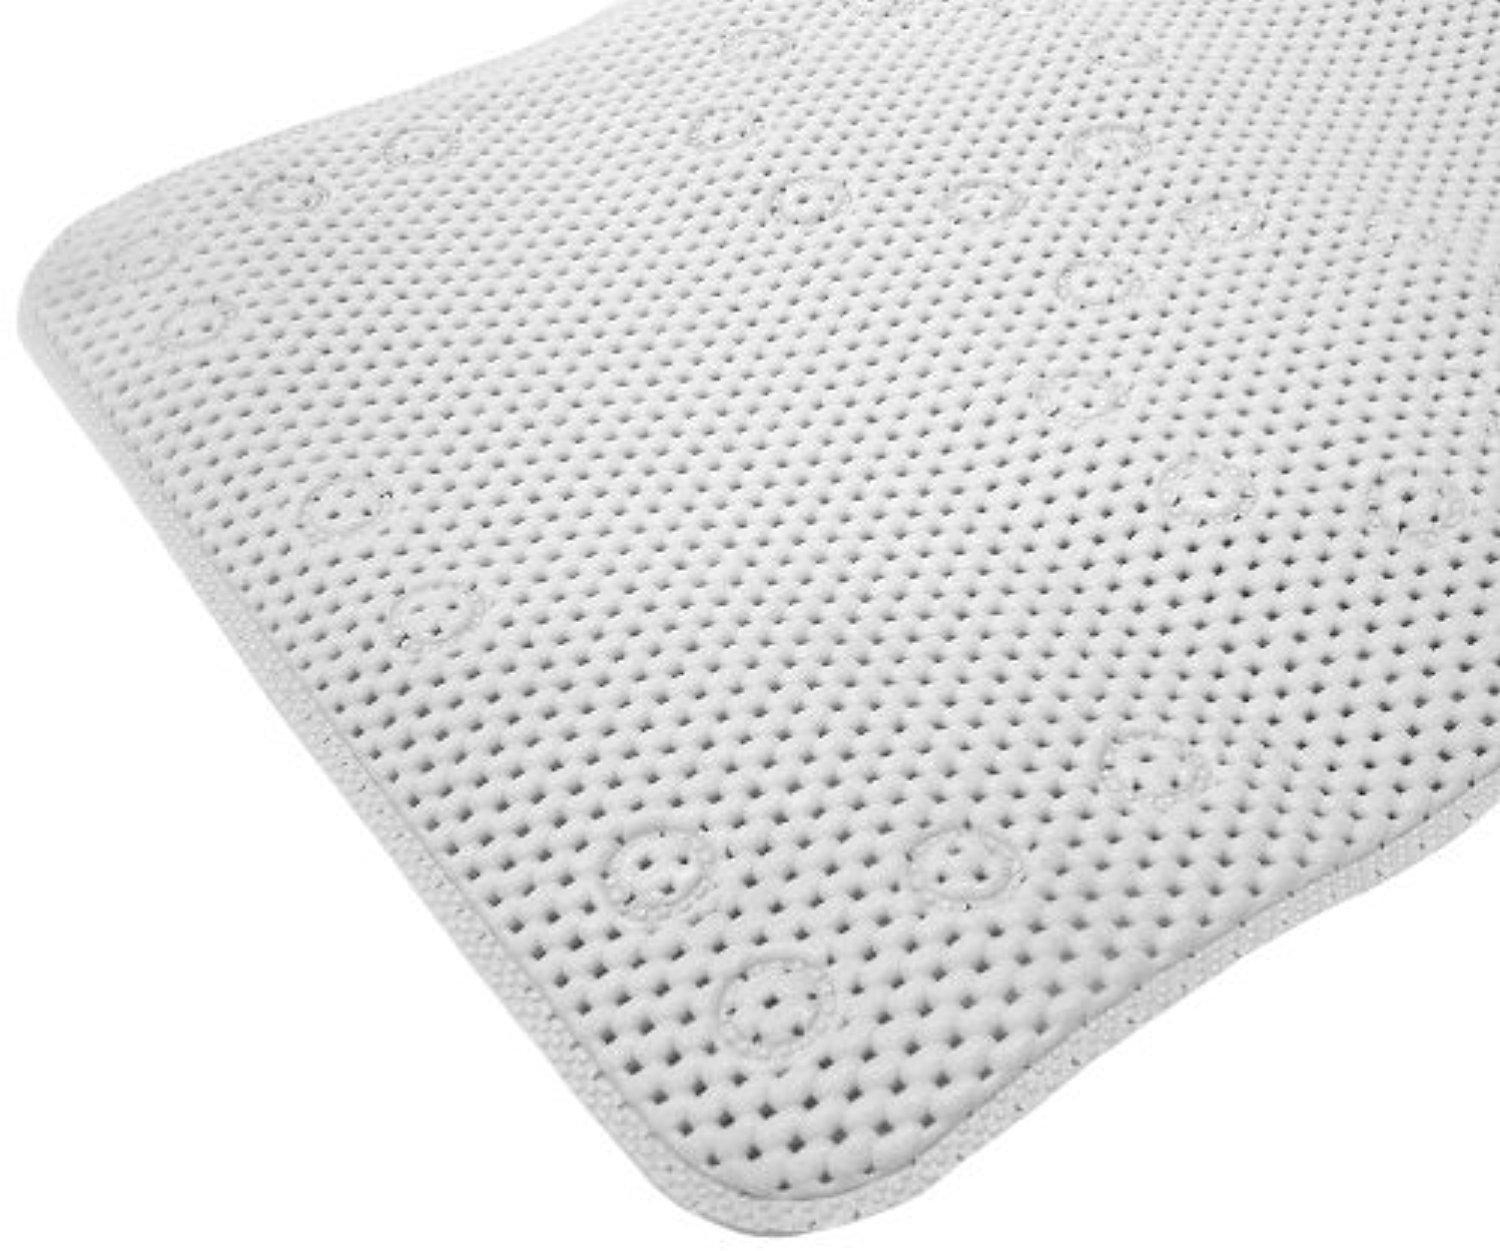 Softee Bath Mat